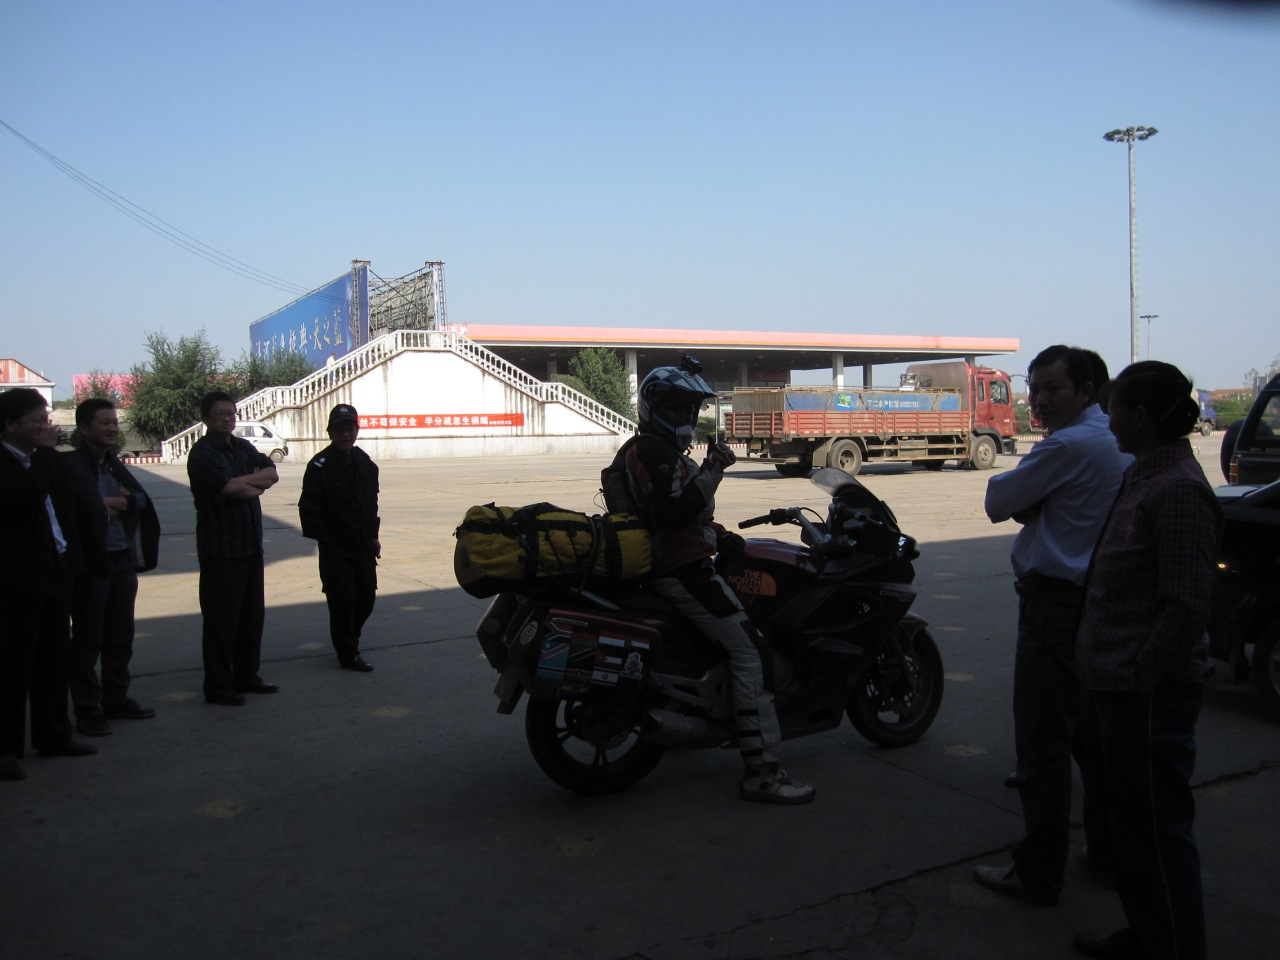 Where ever we stop, large crowds come up to see the bikes. A rare sight  I guess to many people in China.